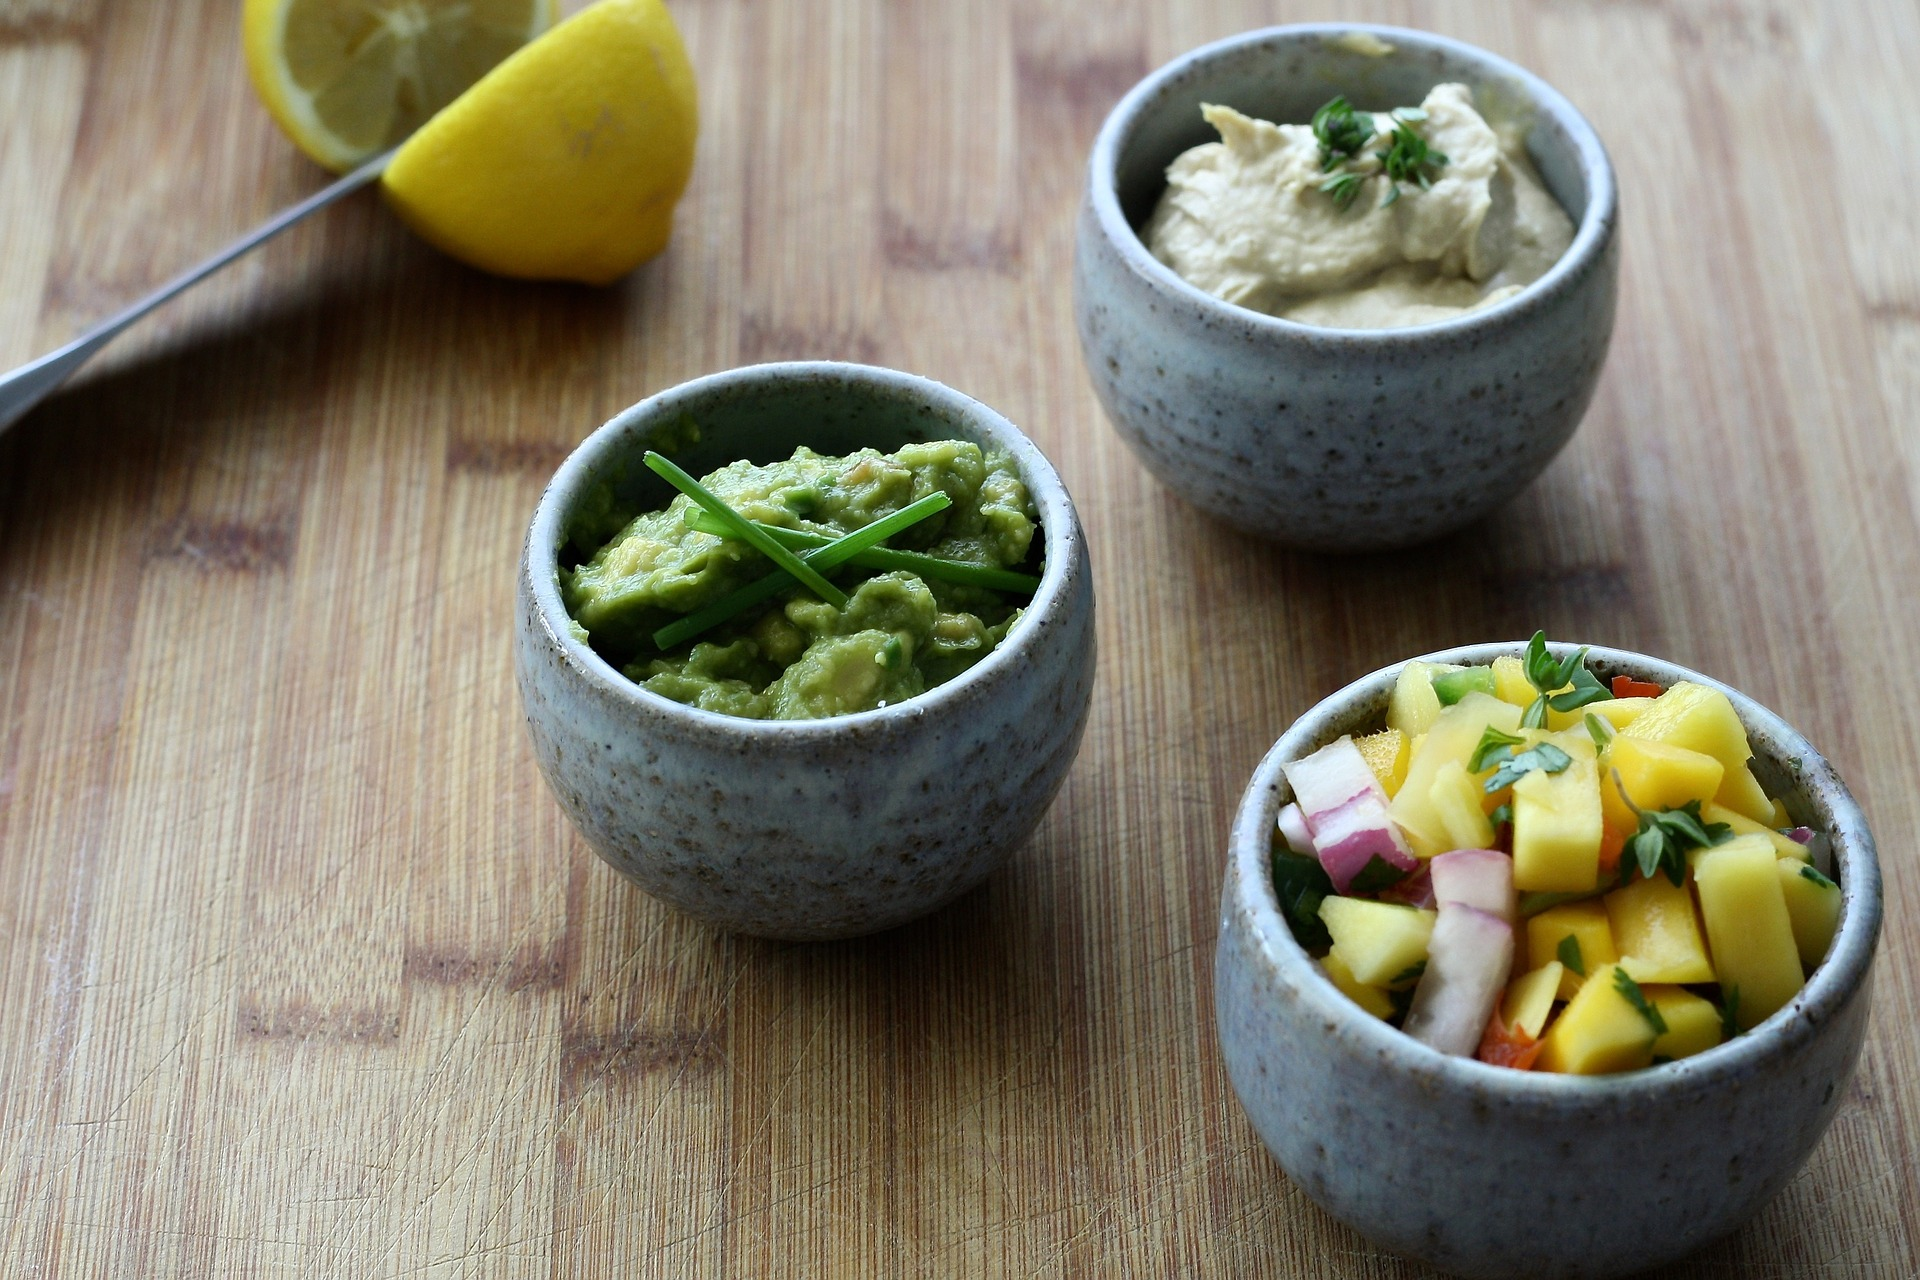 Guacamole, hummus and salsa pair so well together!